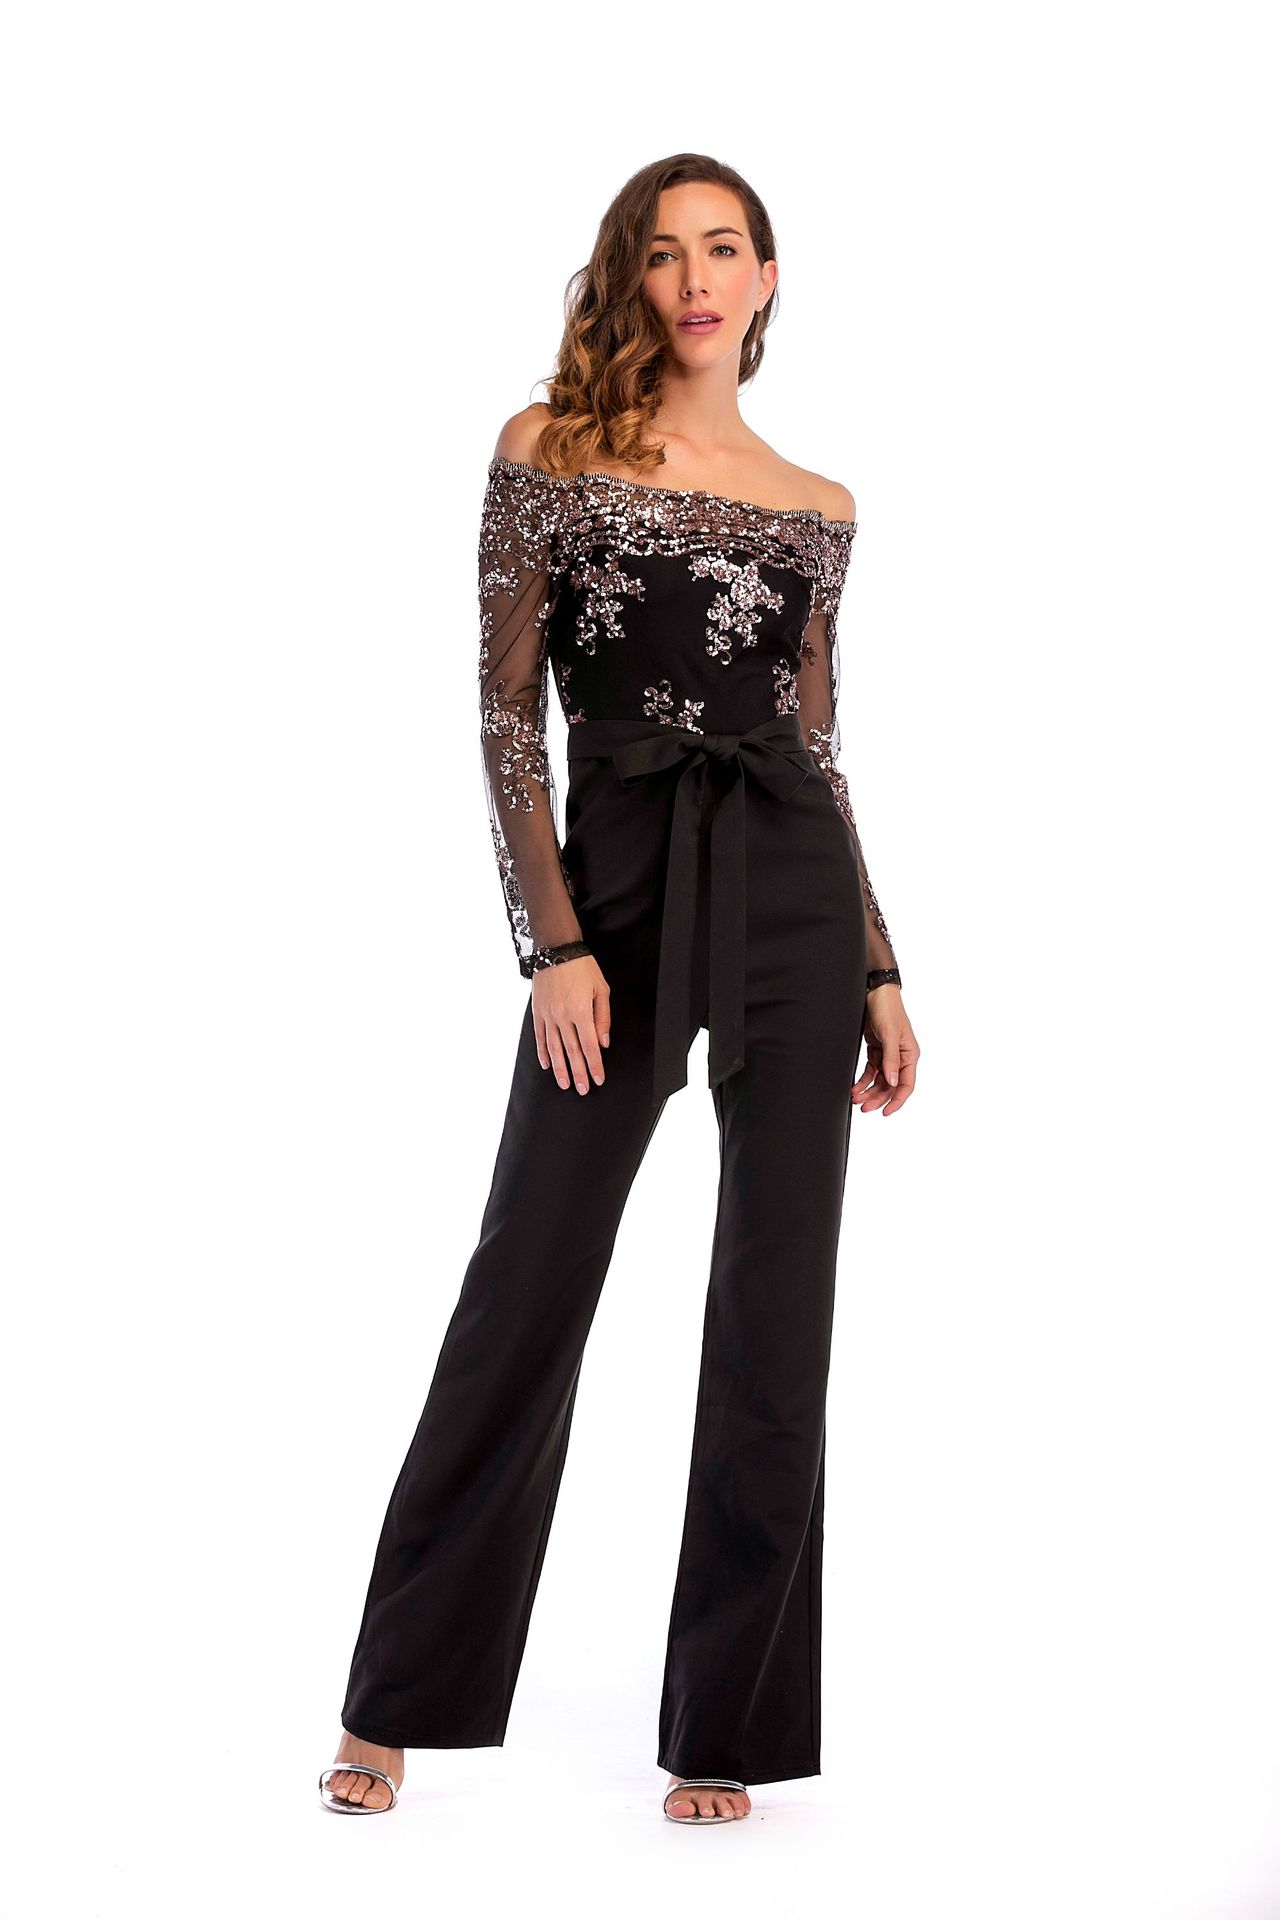 a1be1c658320 undefined IMG 3795 IMG 3812 IMG 3790 IMG 3798. 32145. Rompers Womens  Jumpsuit